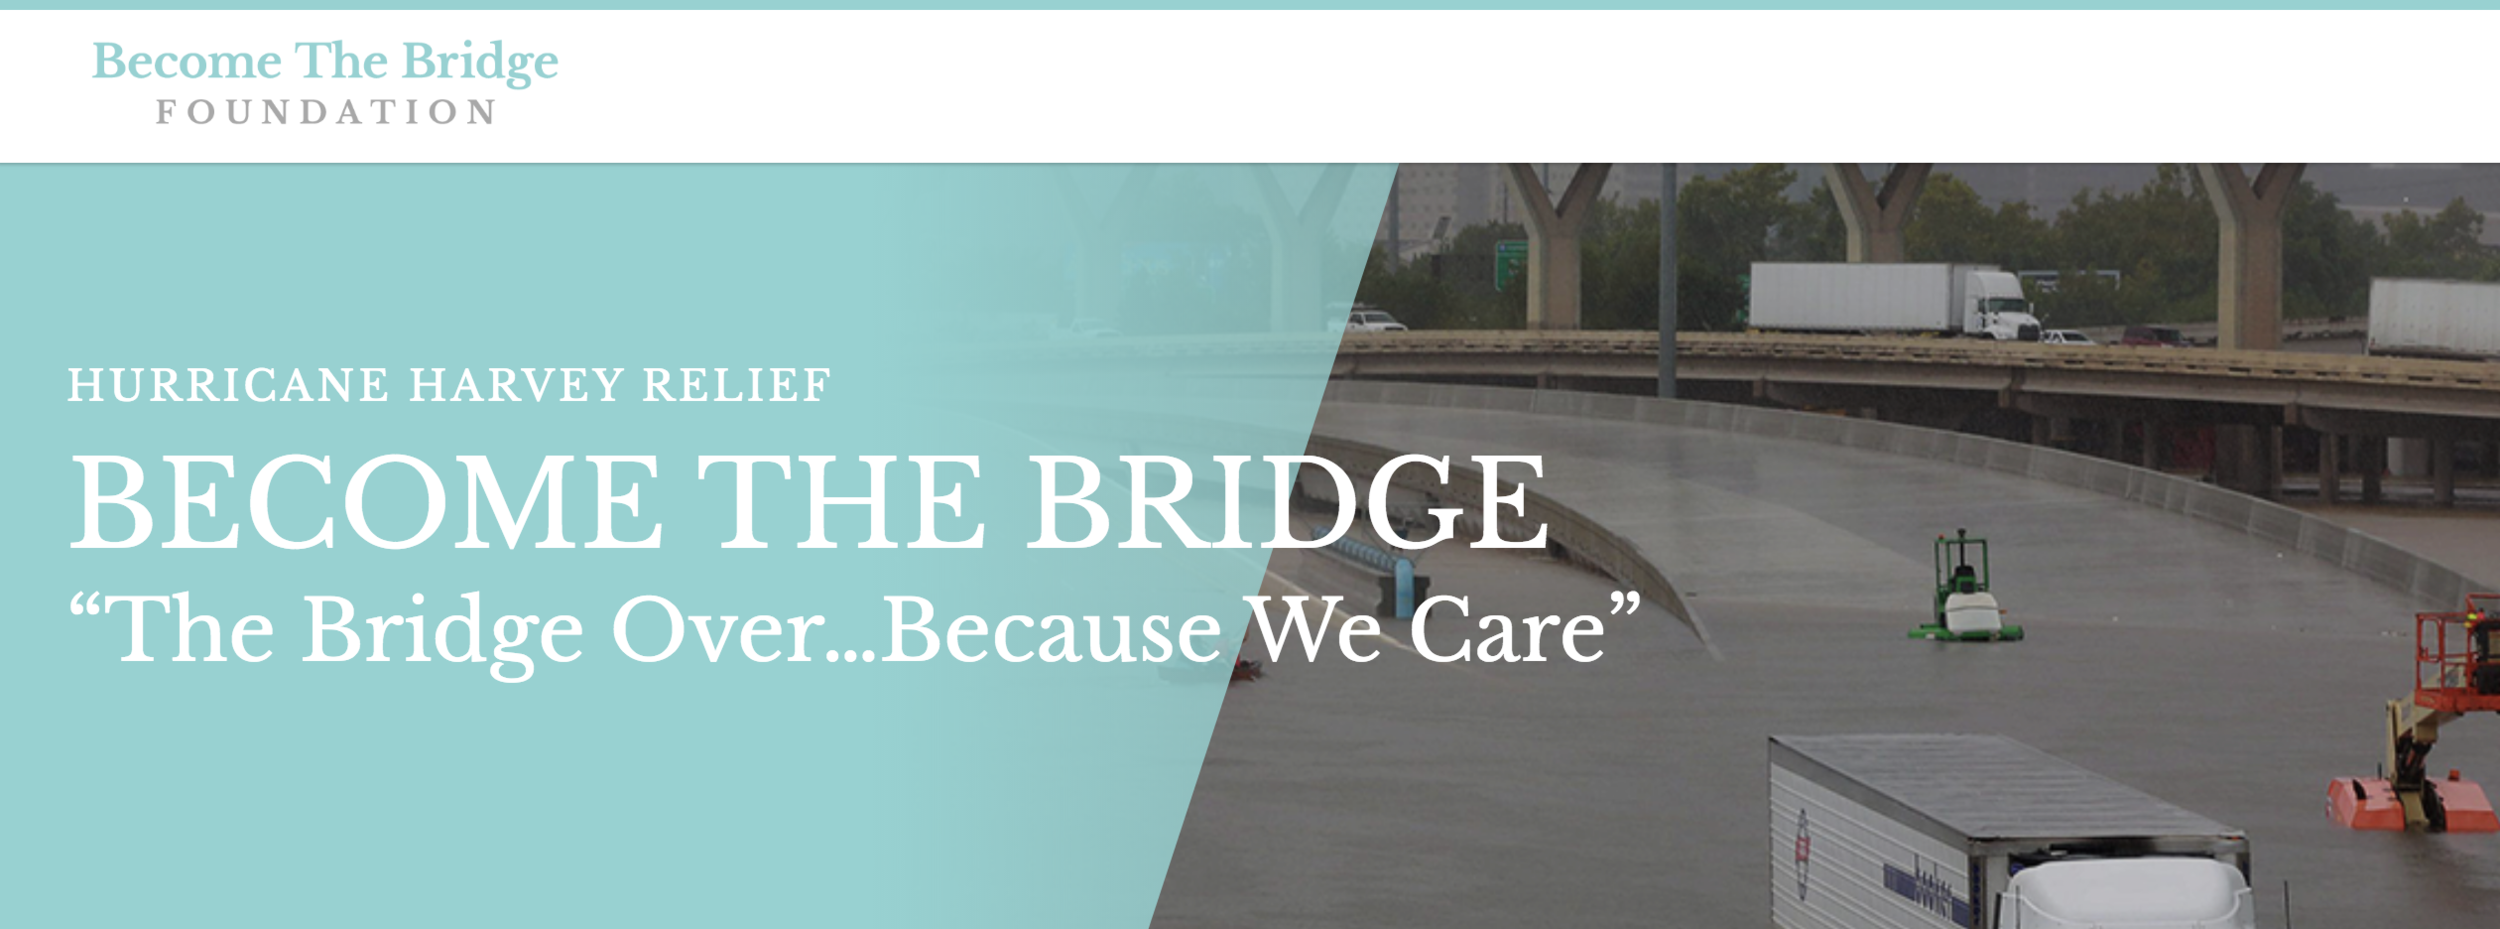 by BECOMing a BRIDGE - The city of Houston and surrounding regions was hit with a once-in-a-lifetime catastrophe. This is something no one has ever seen-and therefore could not be prepared for.The task of rebuilding seems overwhelming. It will take the coordinated efforts of multiple government, civic and religious institutions cooperating together for the common good of those who have been affected in order to bring about true rebuilding and healing.